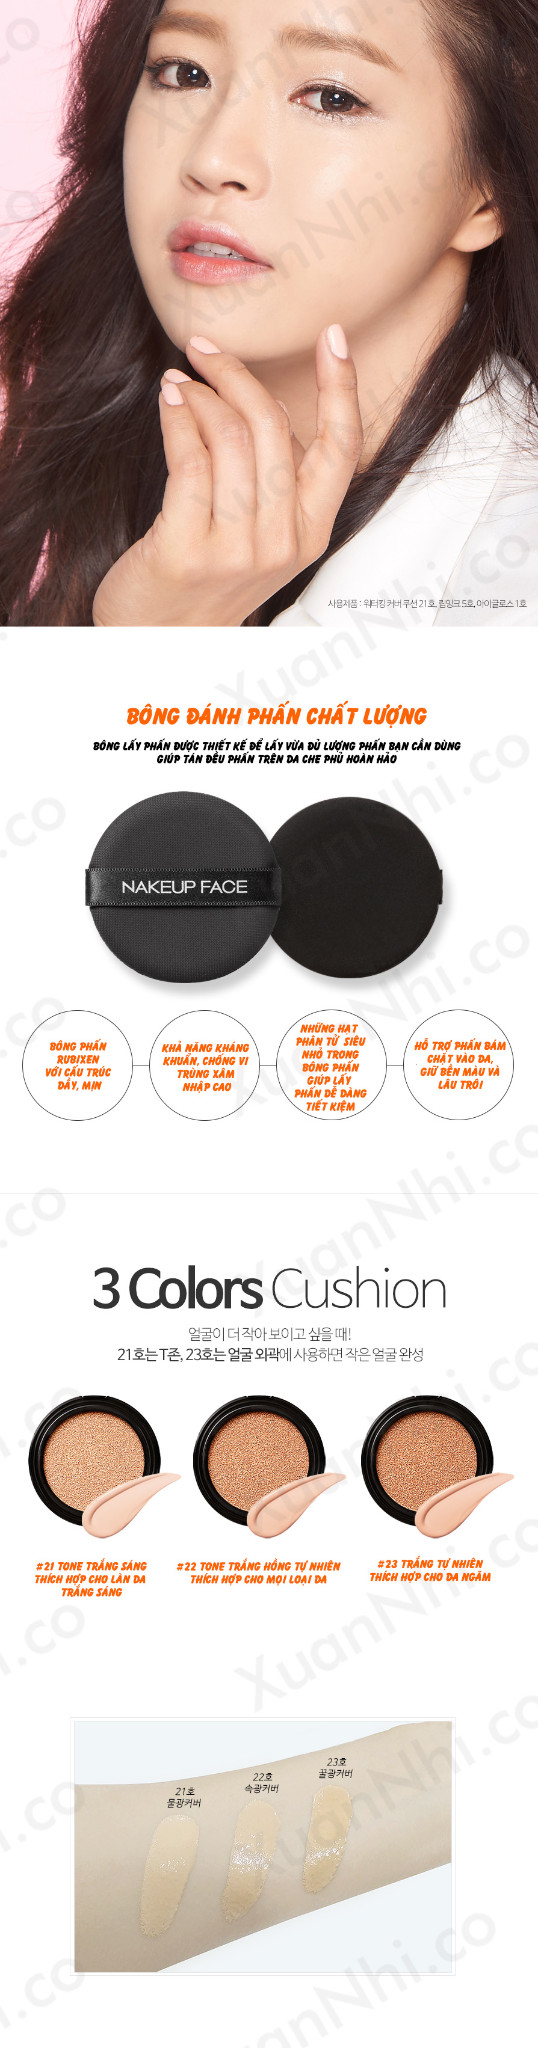 sieu-pham-phan-nuoc-nakeup-face-21-22-23-cushion